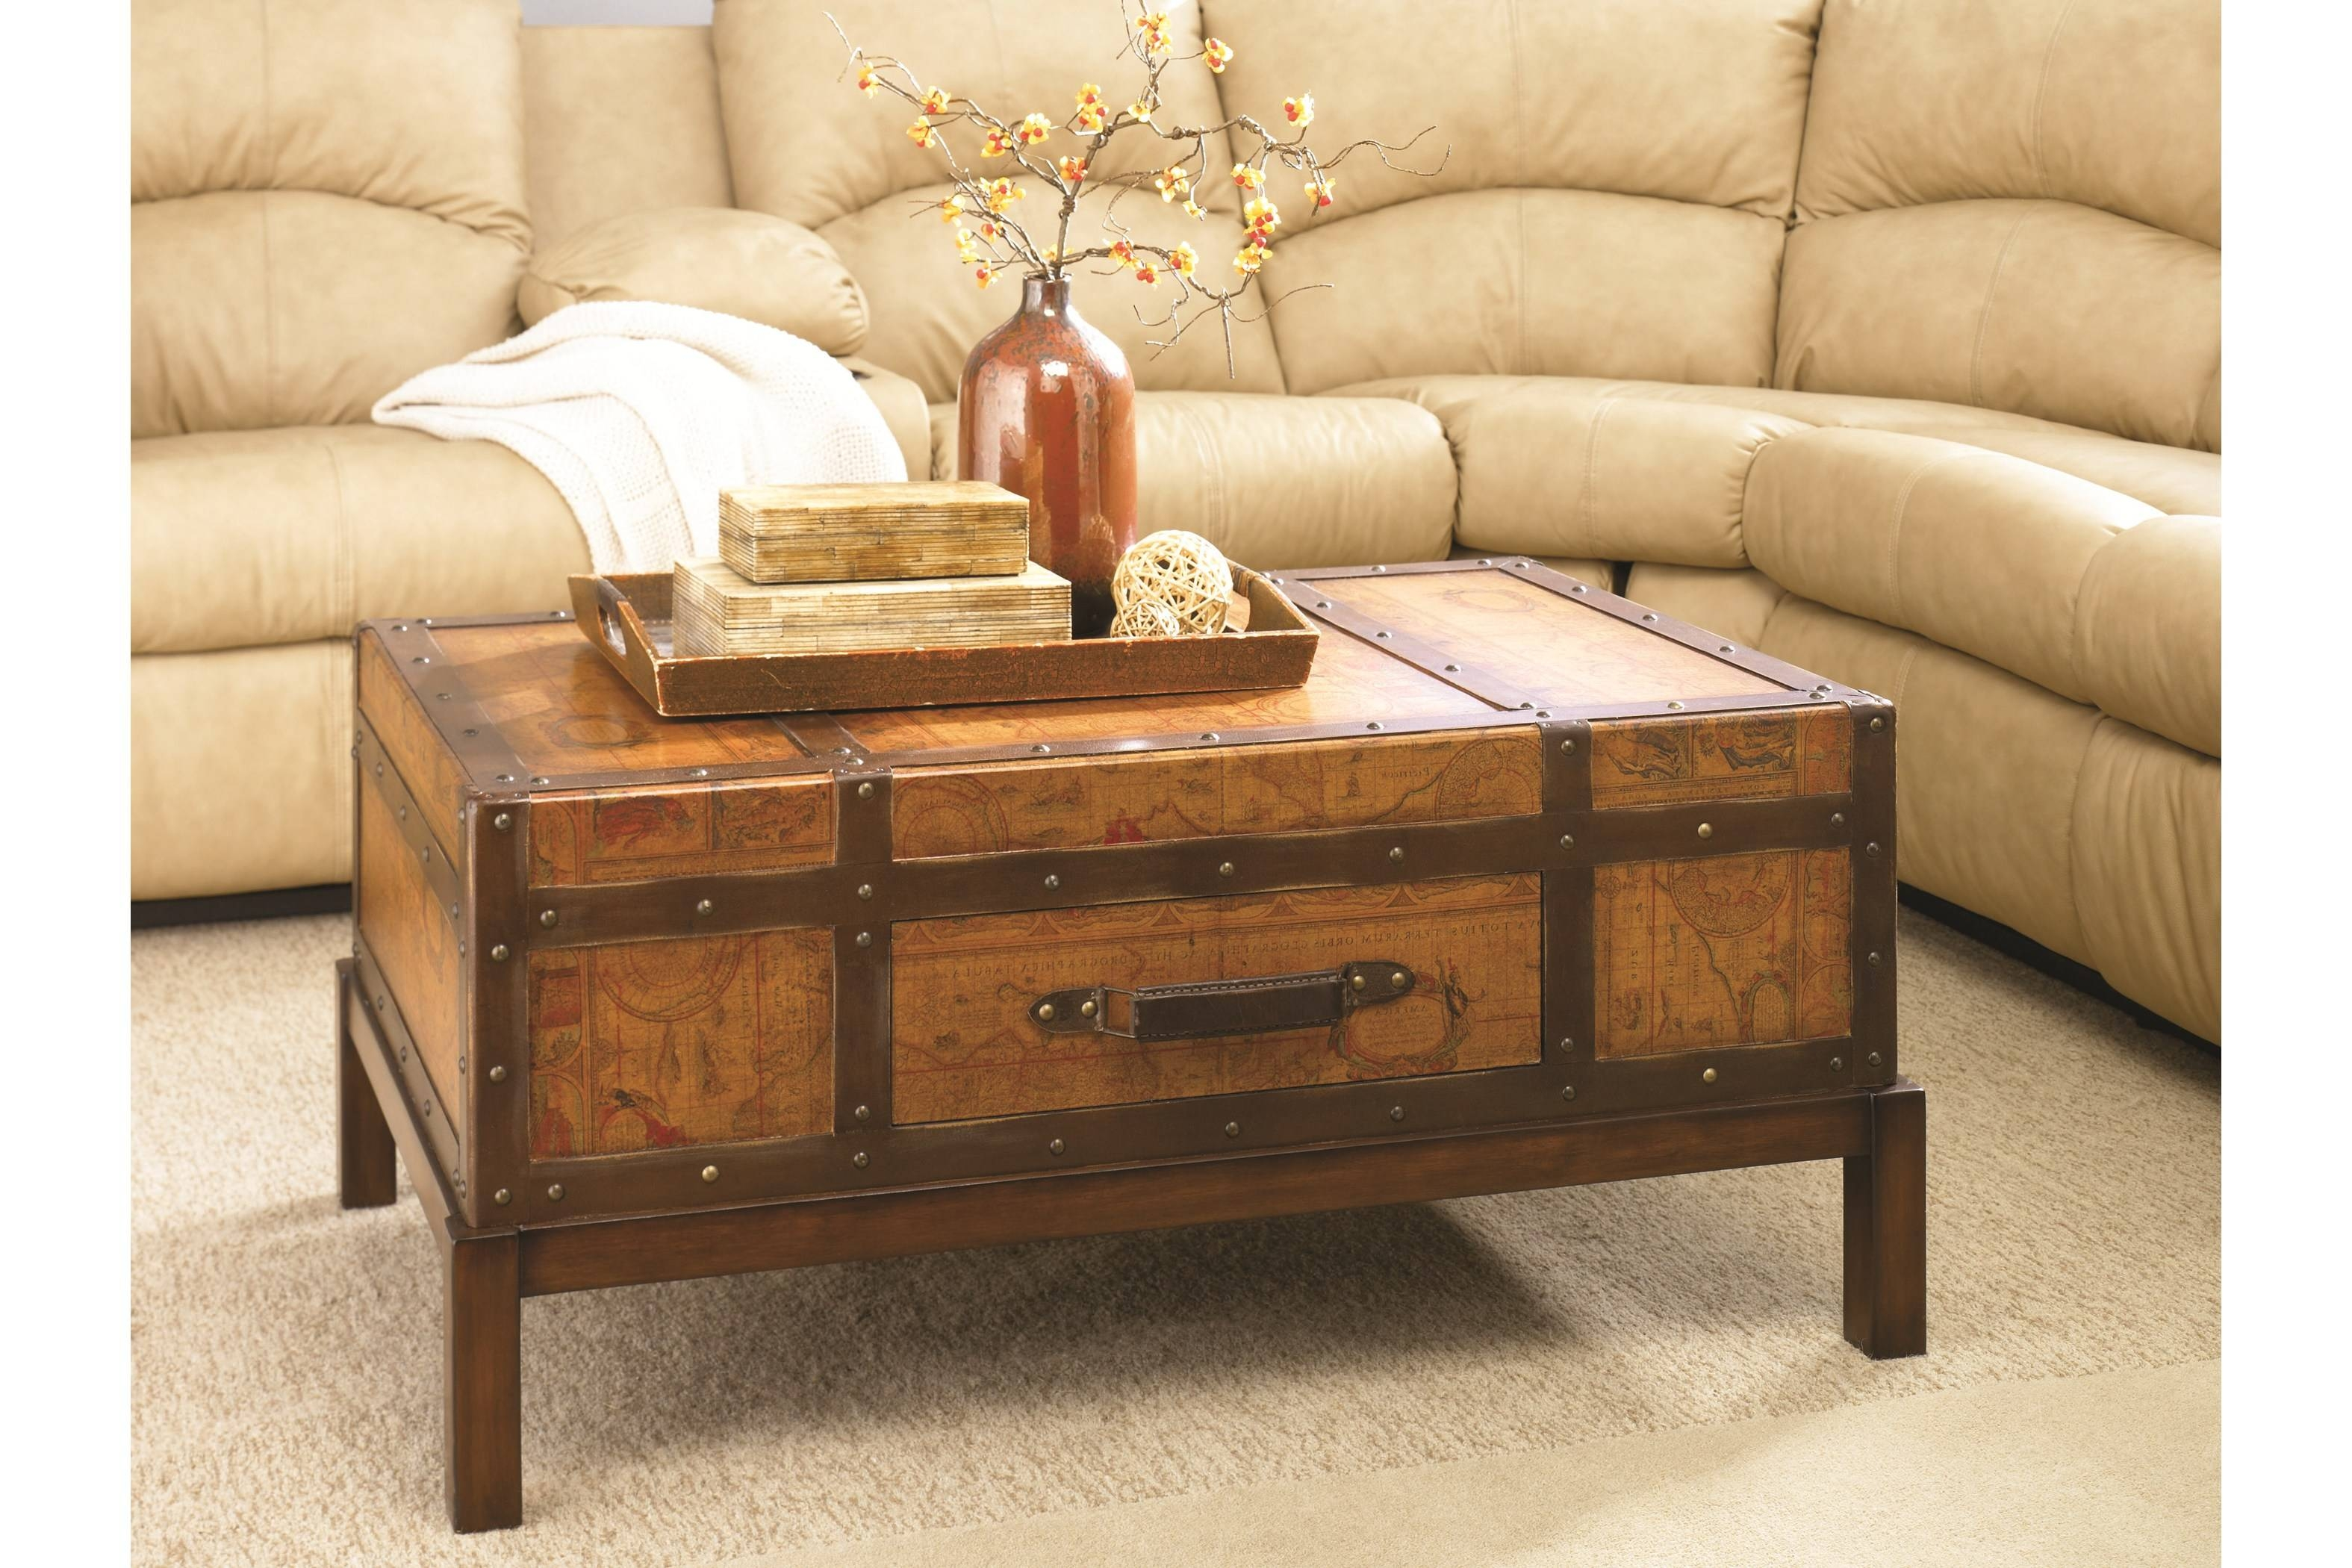 Chest Coffee Table Interior Design – Wood Chest Coffee Table within Silver Trunk Coffee Tables (Image 4 of 30)